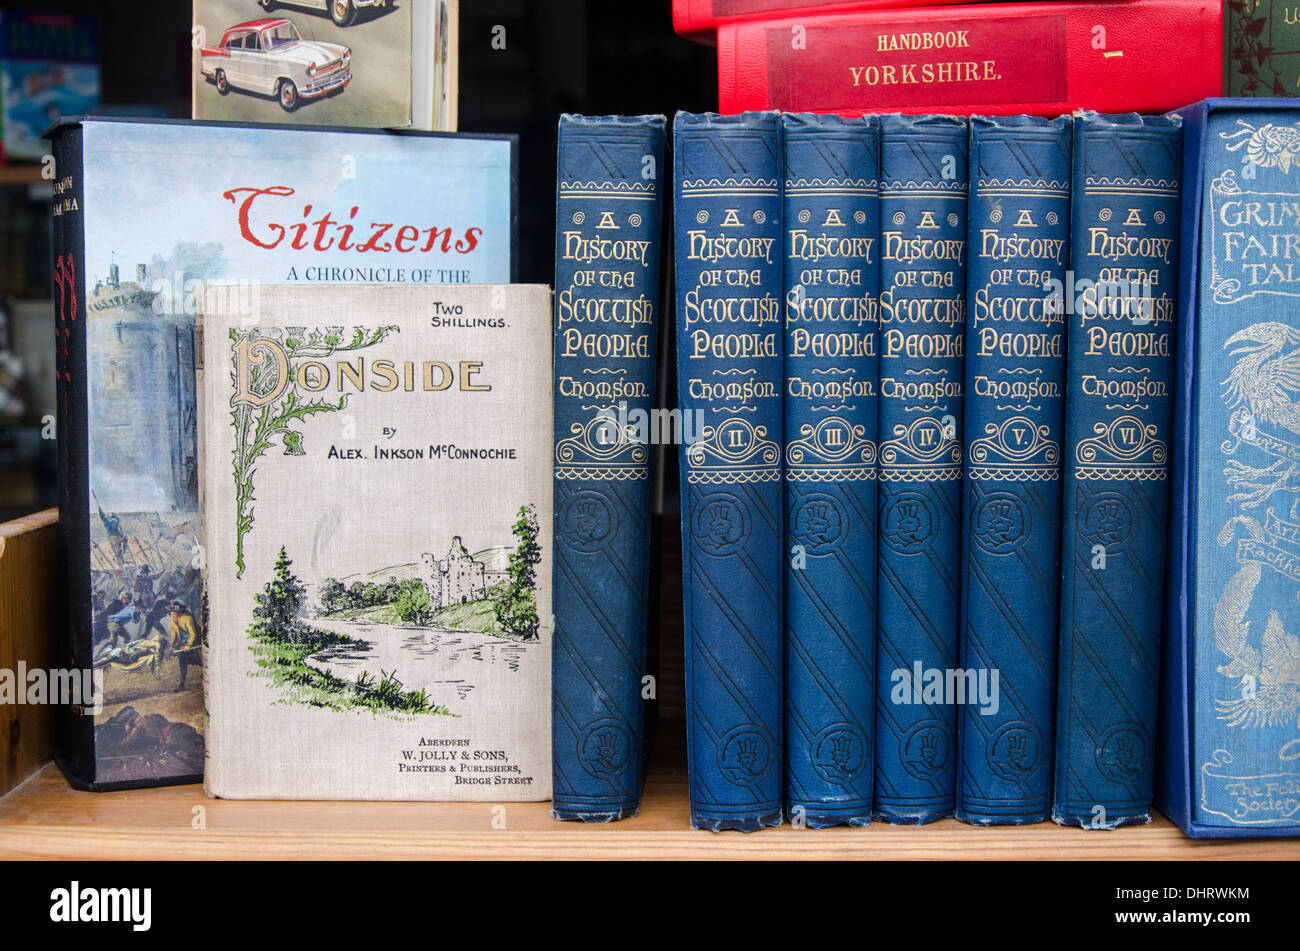 A shelf of books in a secondhand bookseller's window including volumes from 'A history of the Scottish People'. - Stock Image